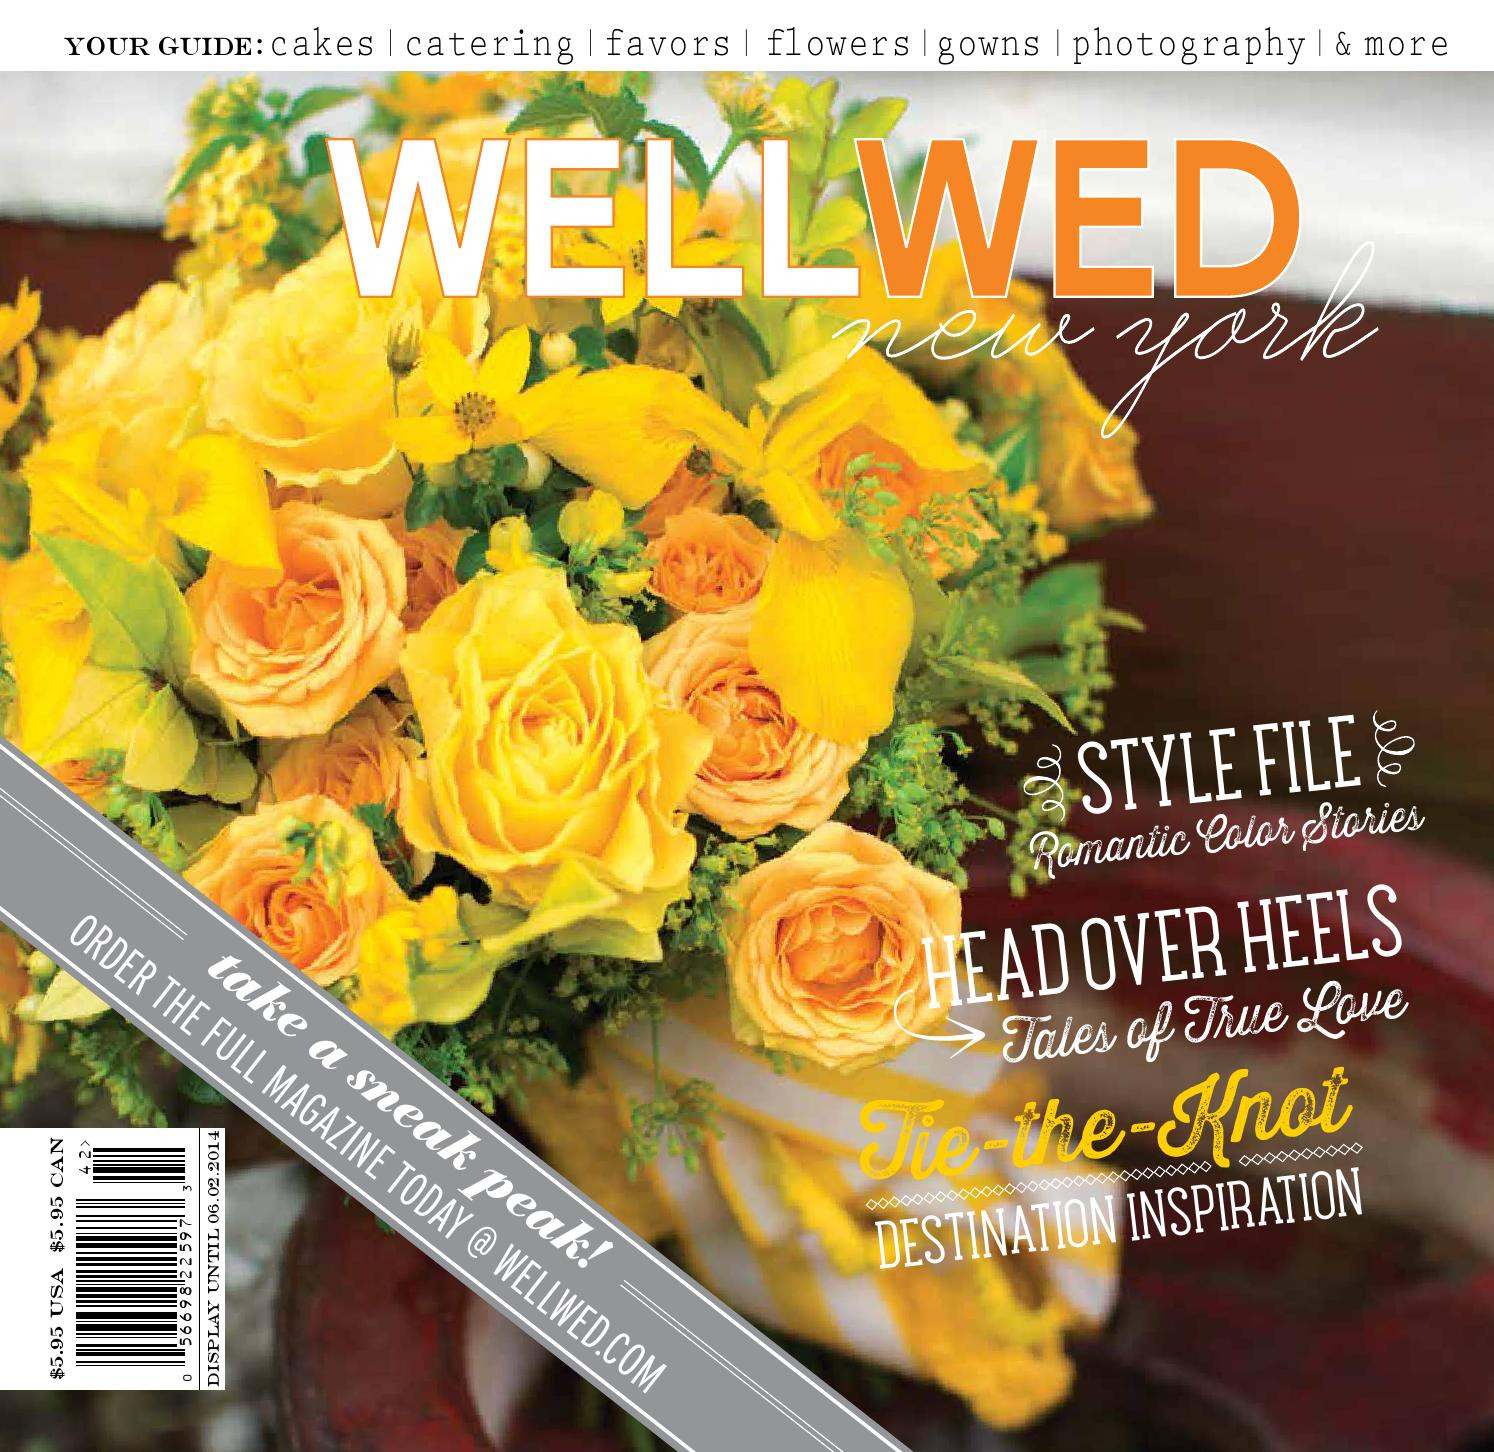 mercury compote vase of wellwed new york issue no 13 by vermont vows and wellwed within wellwed new york issue no 13 by vermont vows and wellwed magazines issuu